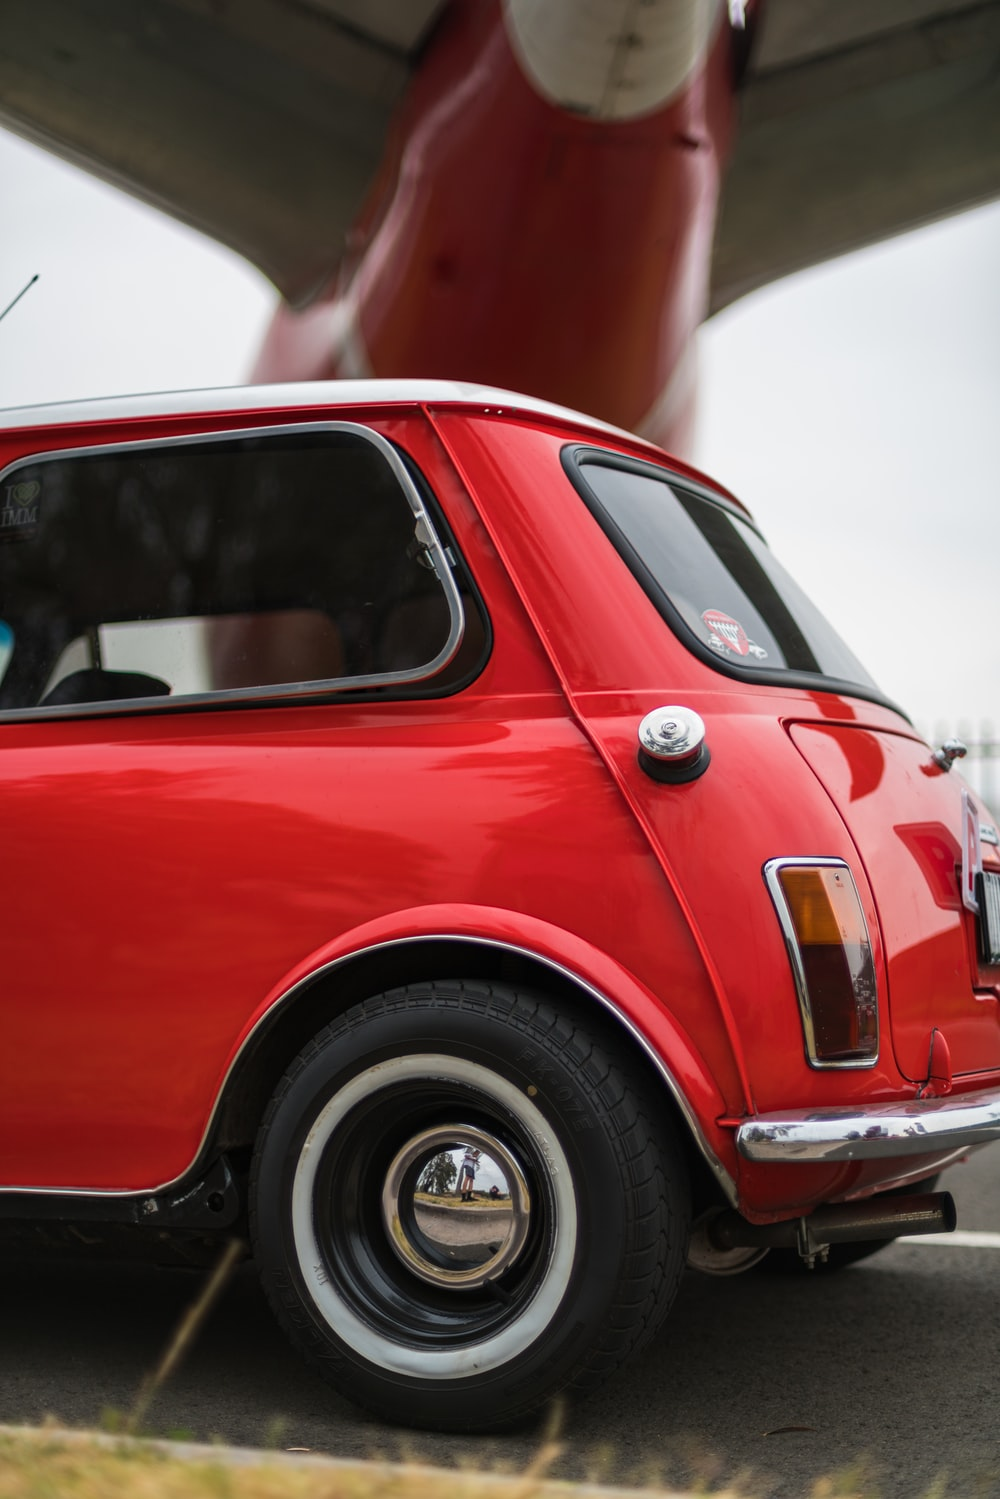 selective focus photography of red hatchback during daytime